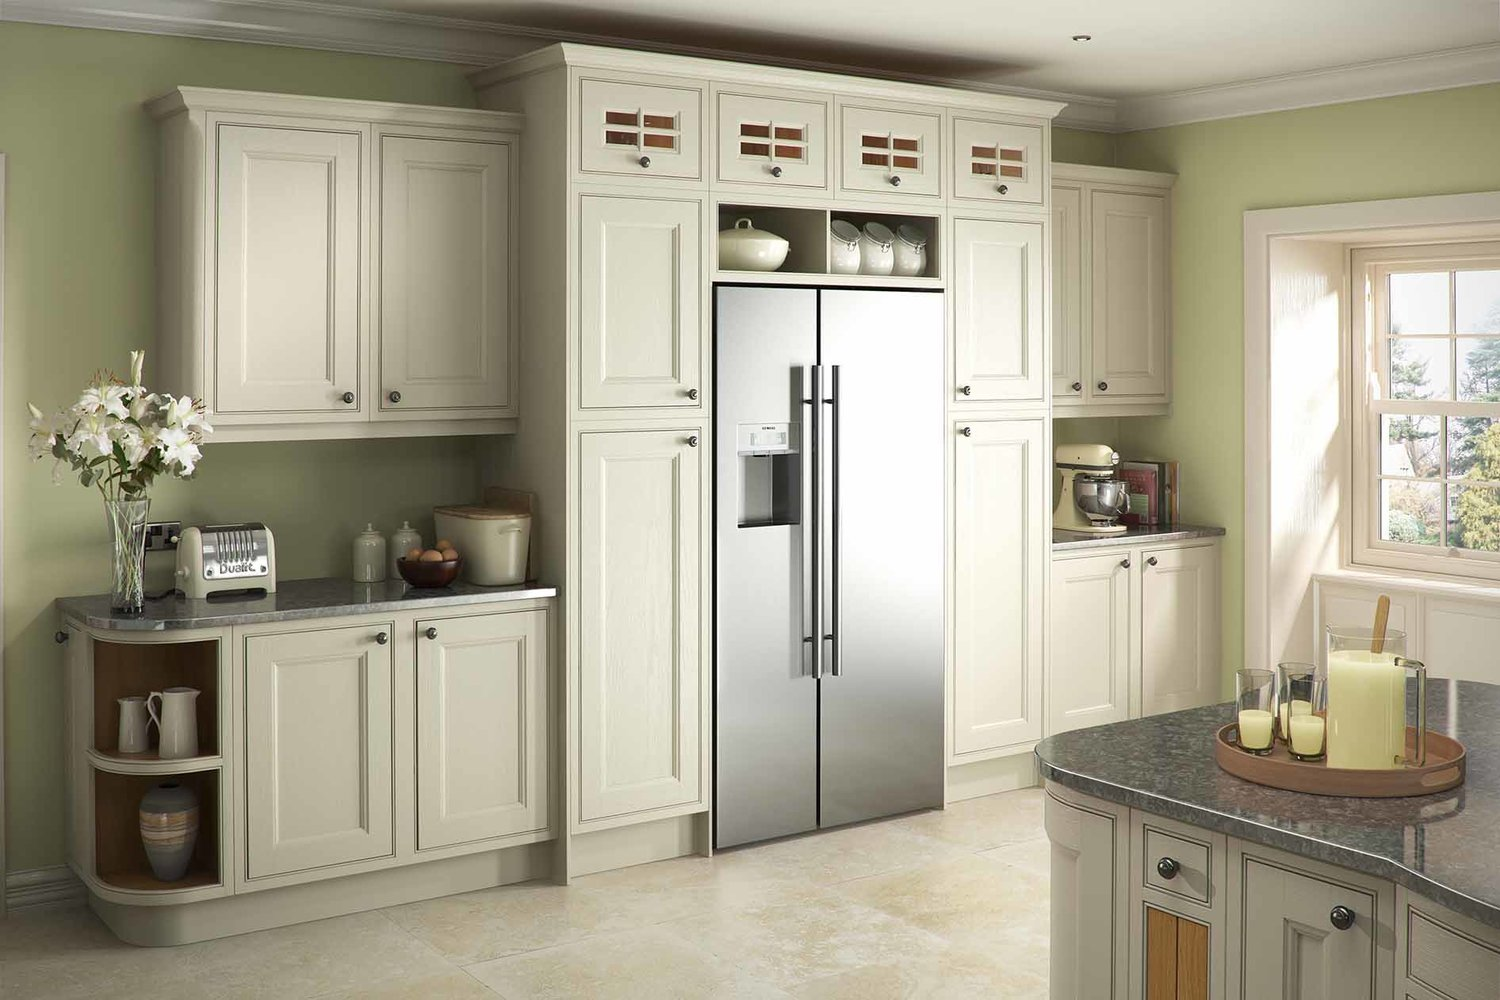 choose a simple granite profile for sharp, classy looks in your kitchen.